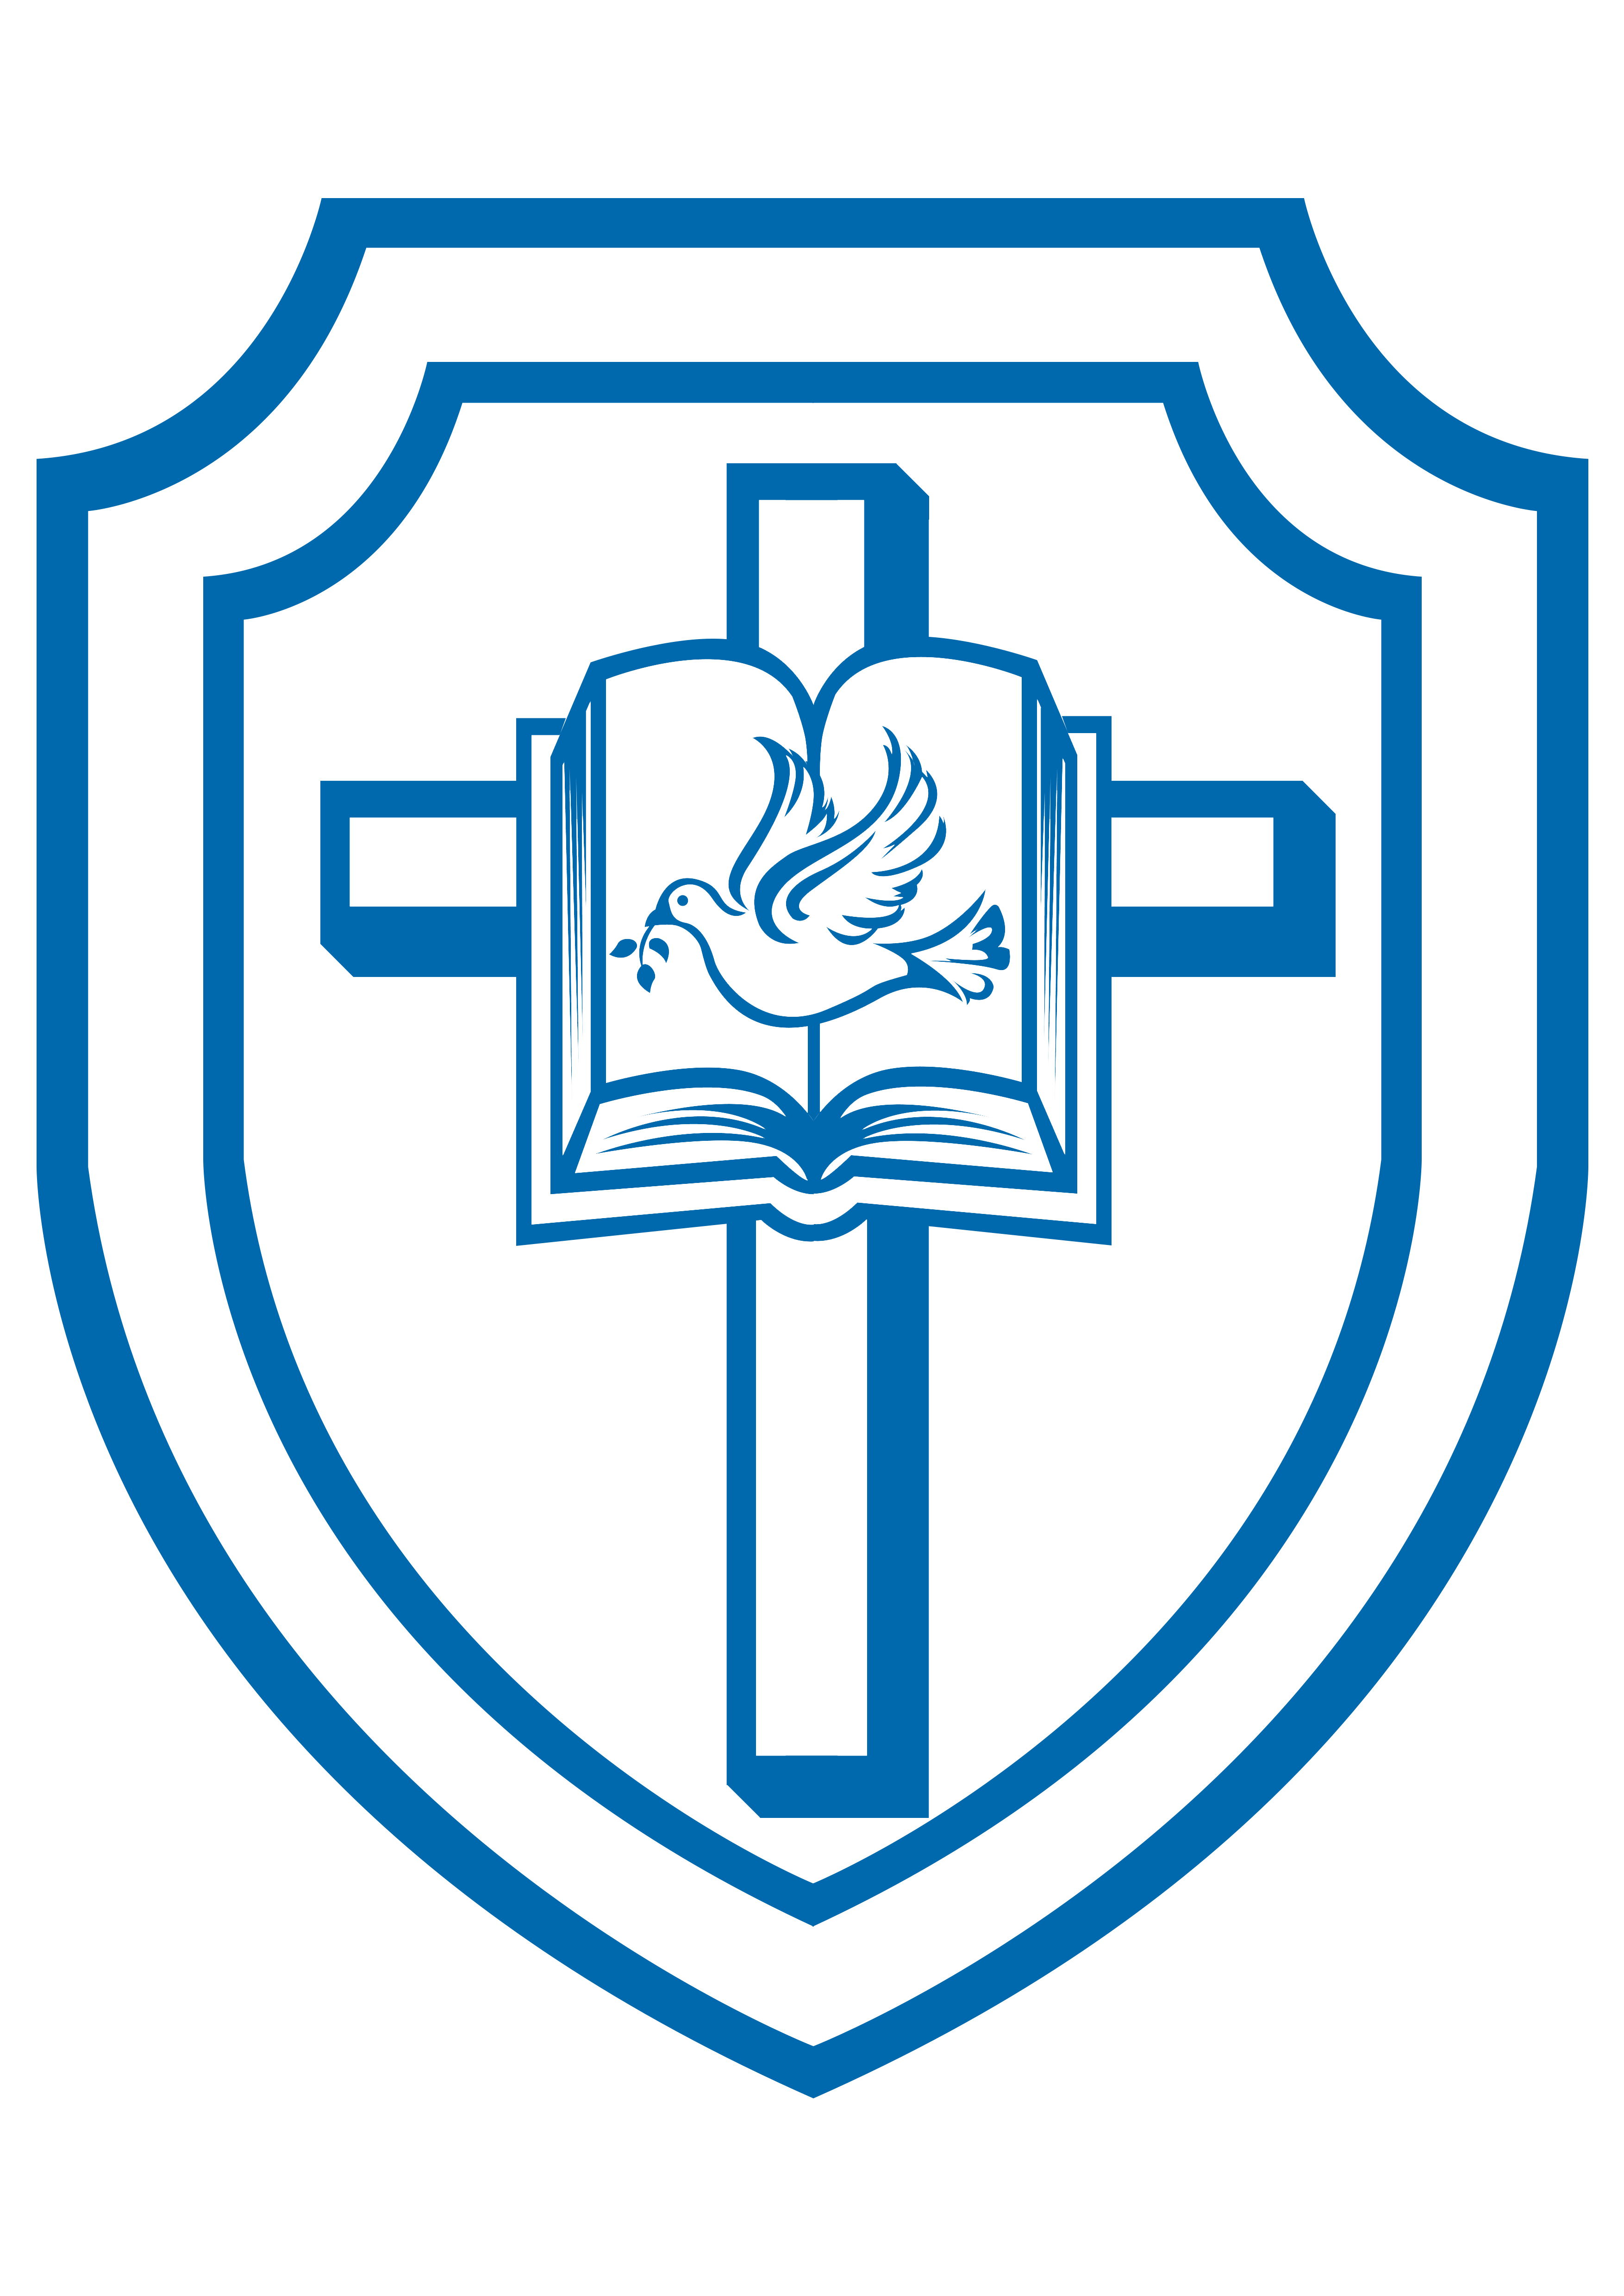 Crest_Only_Blue.png